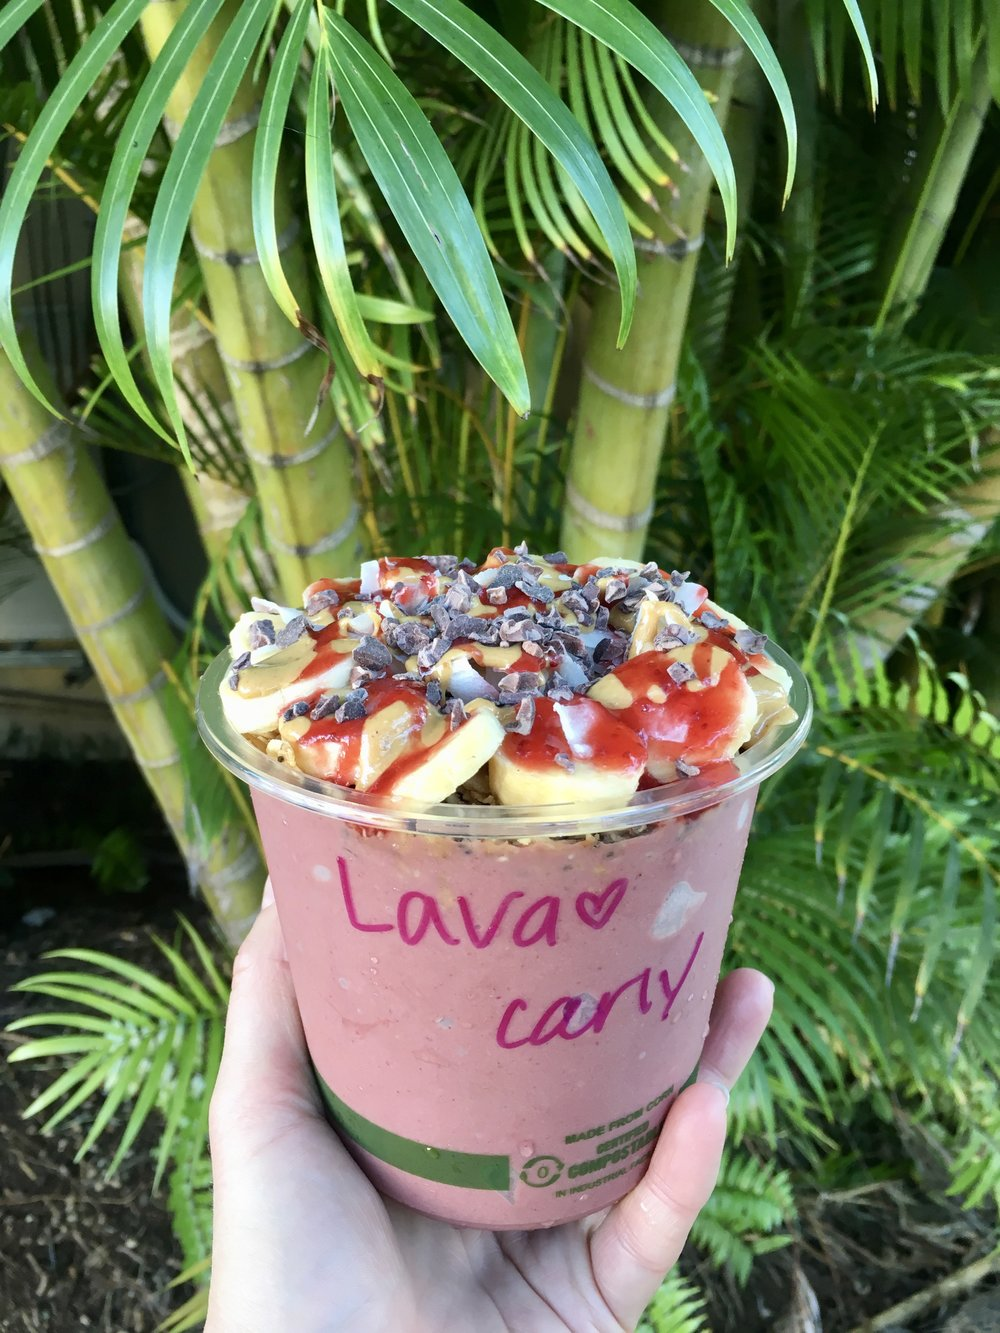 Lava bowl from the Coconut Cup